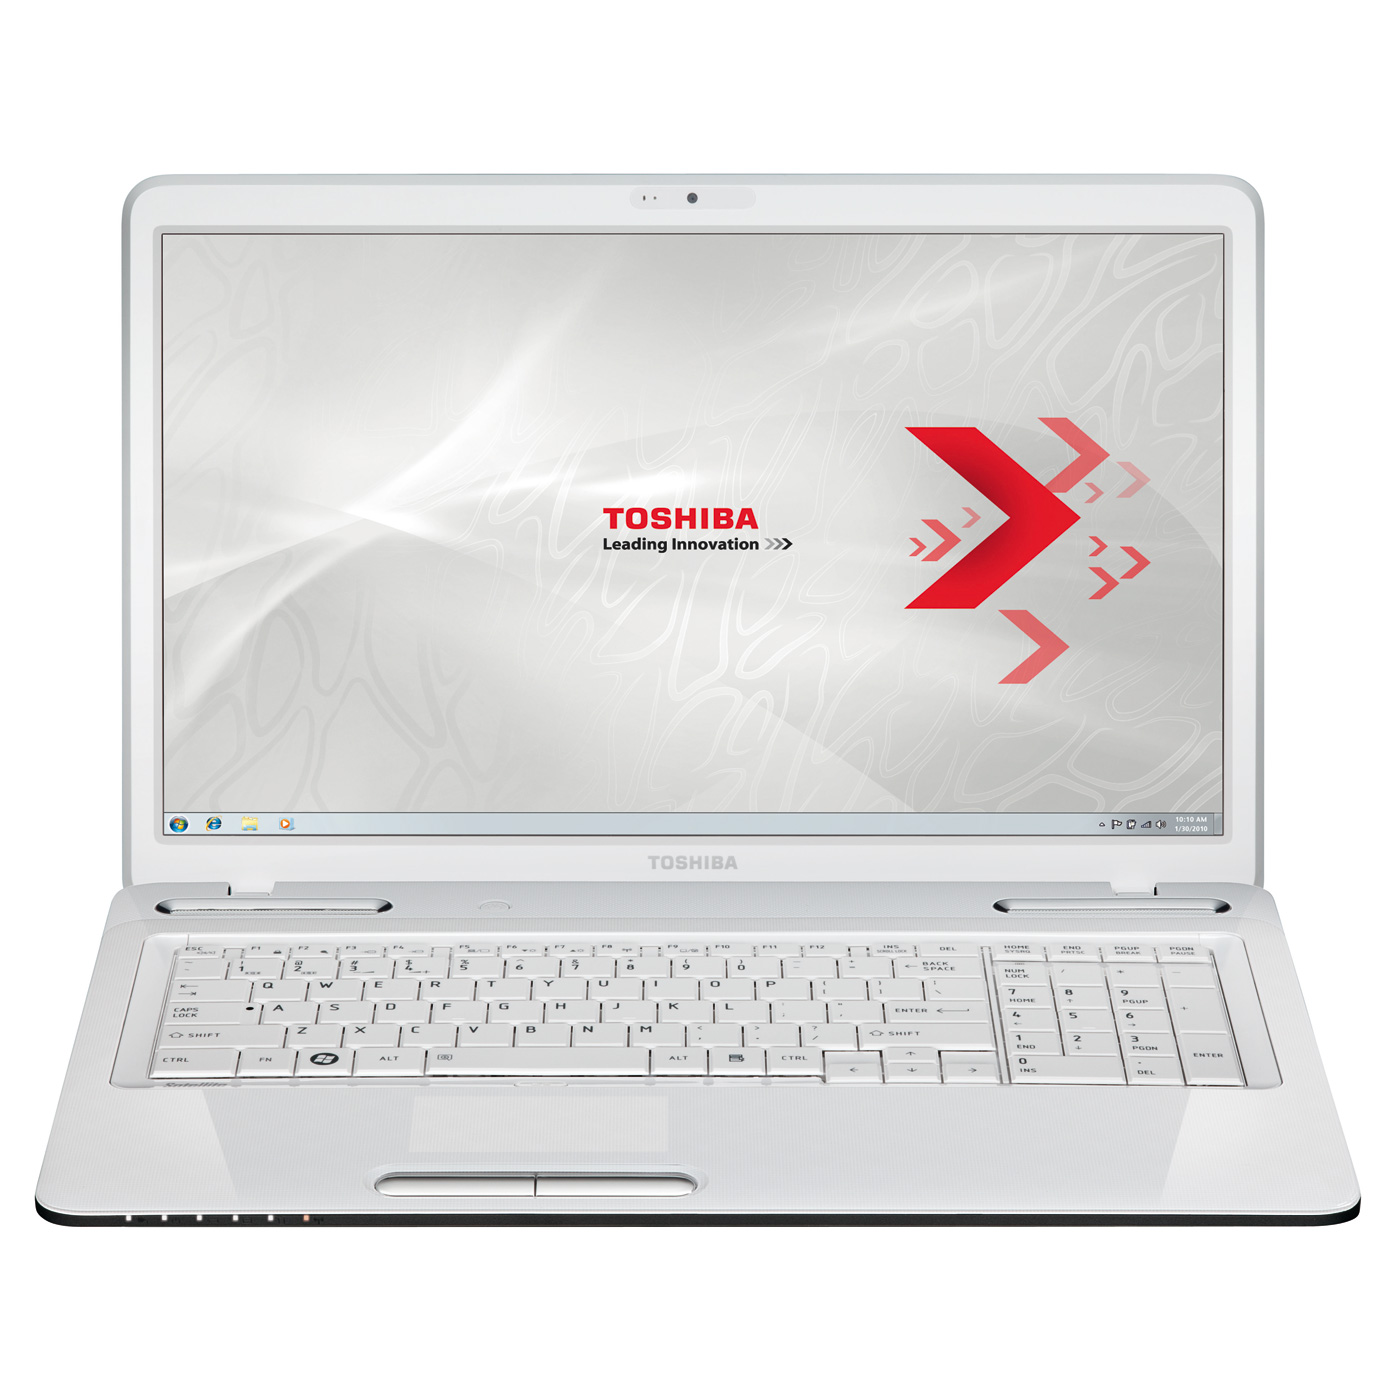 toshiba satellite l775 17n blanc pc portable toshiba sur. Black Bedroom Furniture Sets. Home Design Ideas